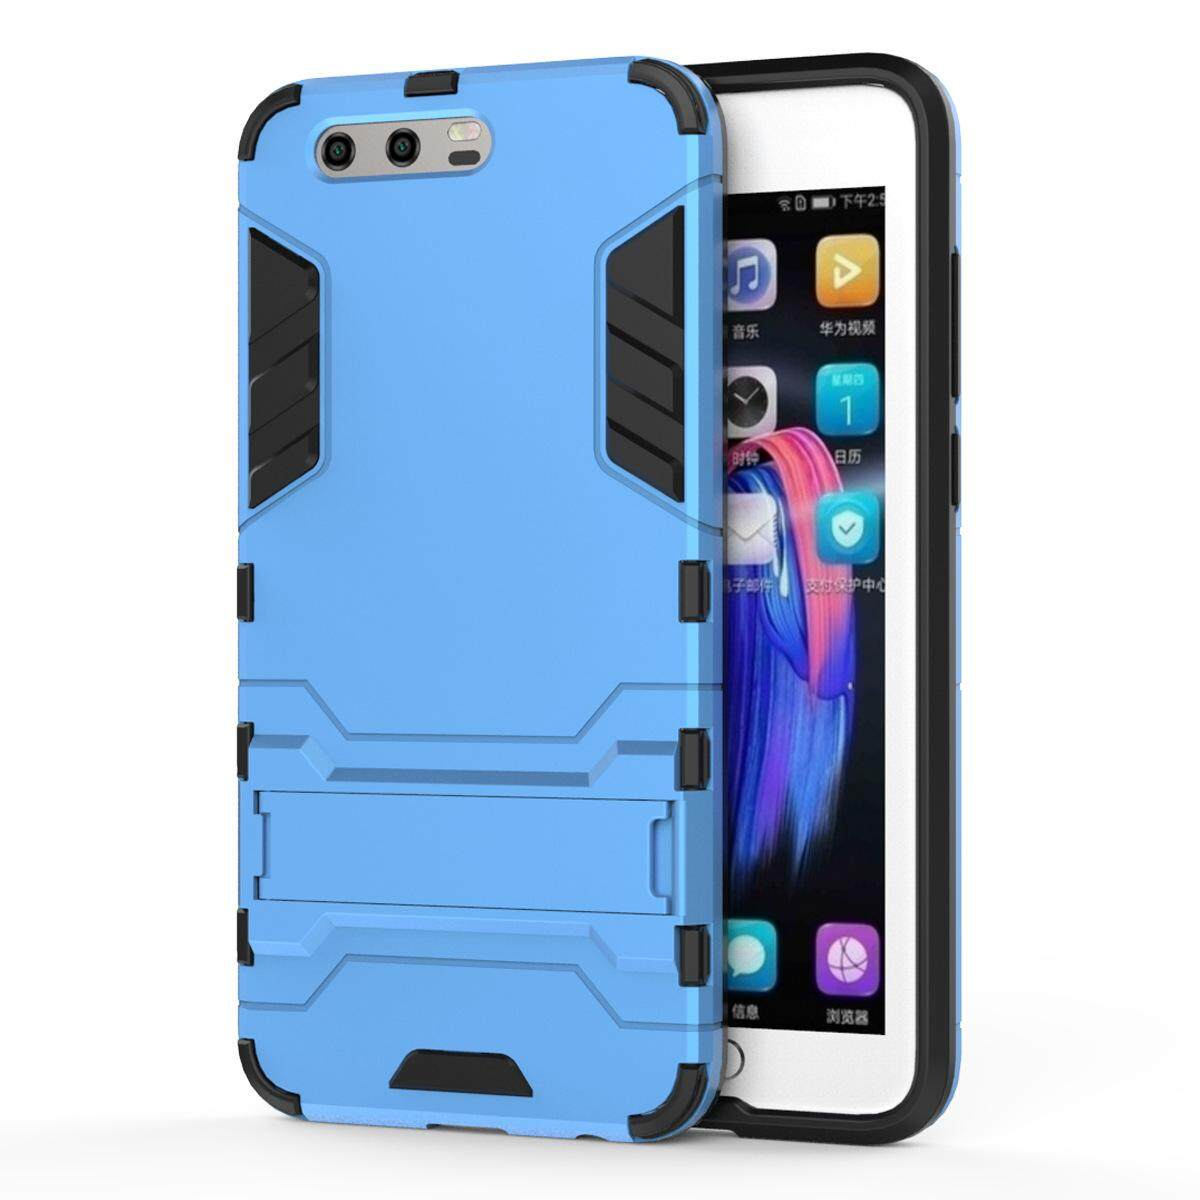 Hình ảnh for Huawei Honor 9 Case 2in1 PC+TPU Hybrid Slim Back Case Ultra Thin Armor Cover, with Kickstand Holder, Glossy, Minimalist, Casual